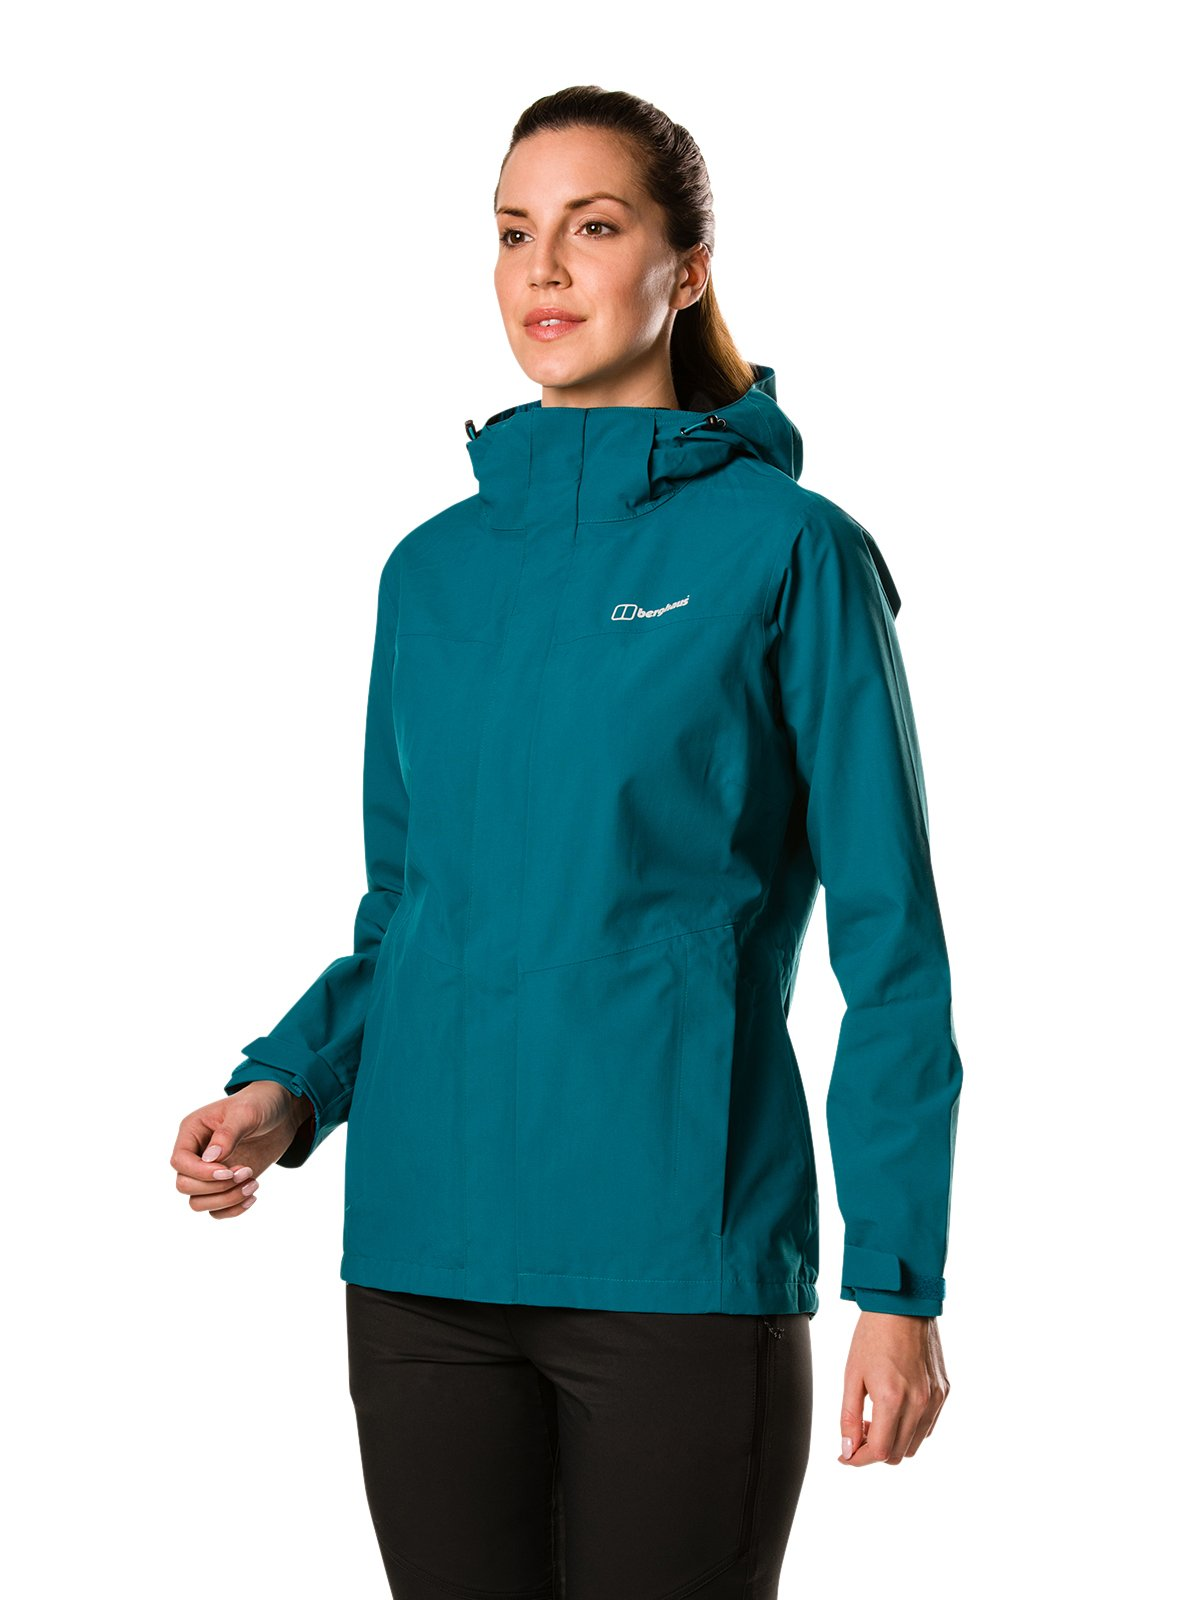 61O IetHePL - 'Berghaus Women's Hillwalker Interactive Gore-Tex Waterproof Jacket